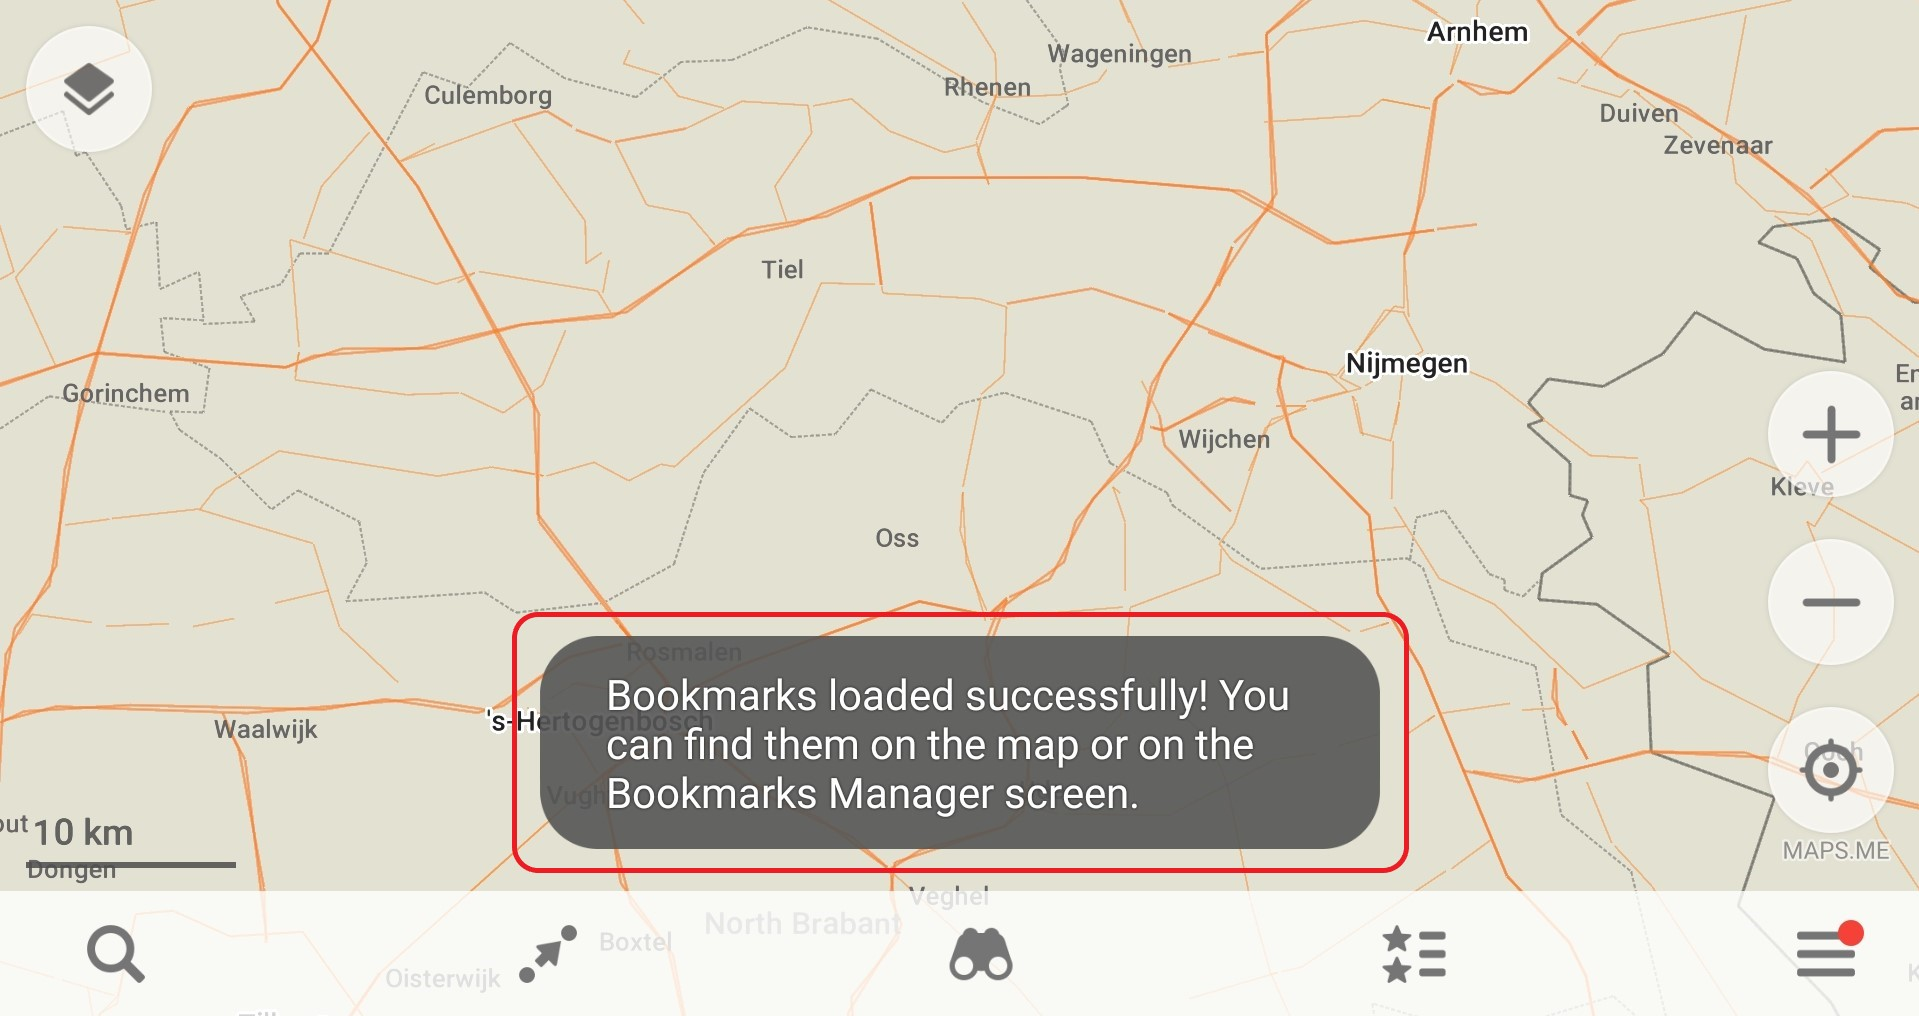 Image 10:  Notification when you have successfully loaded the GPS file into the Maps.Me application